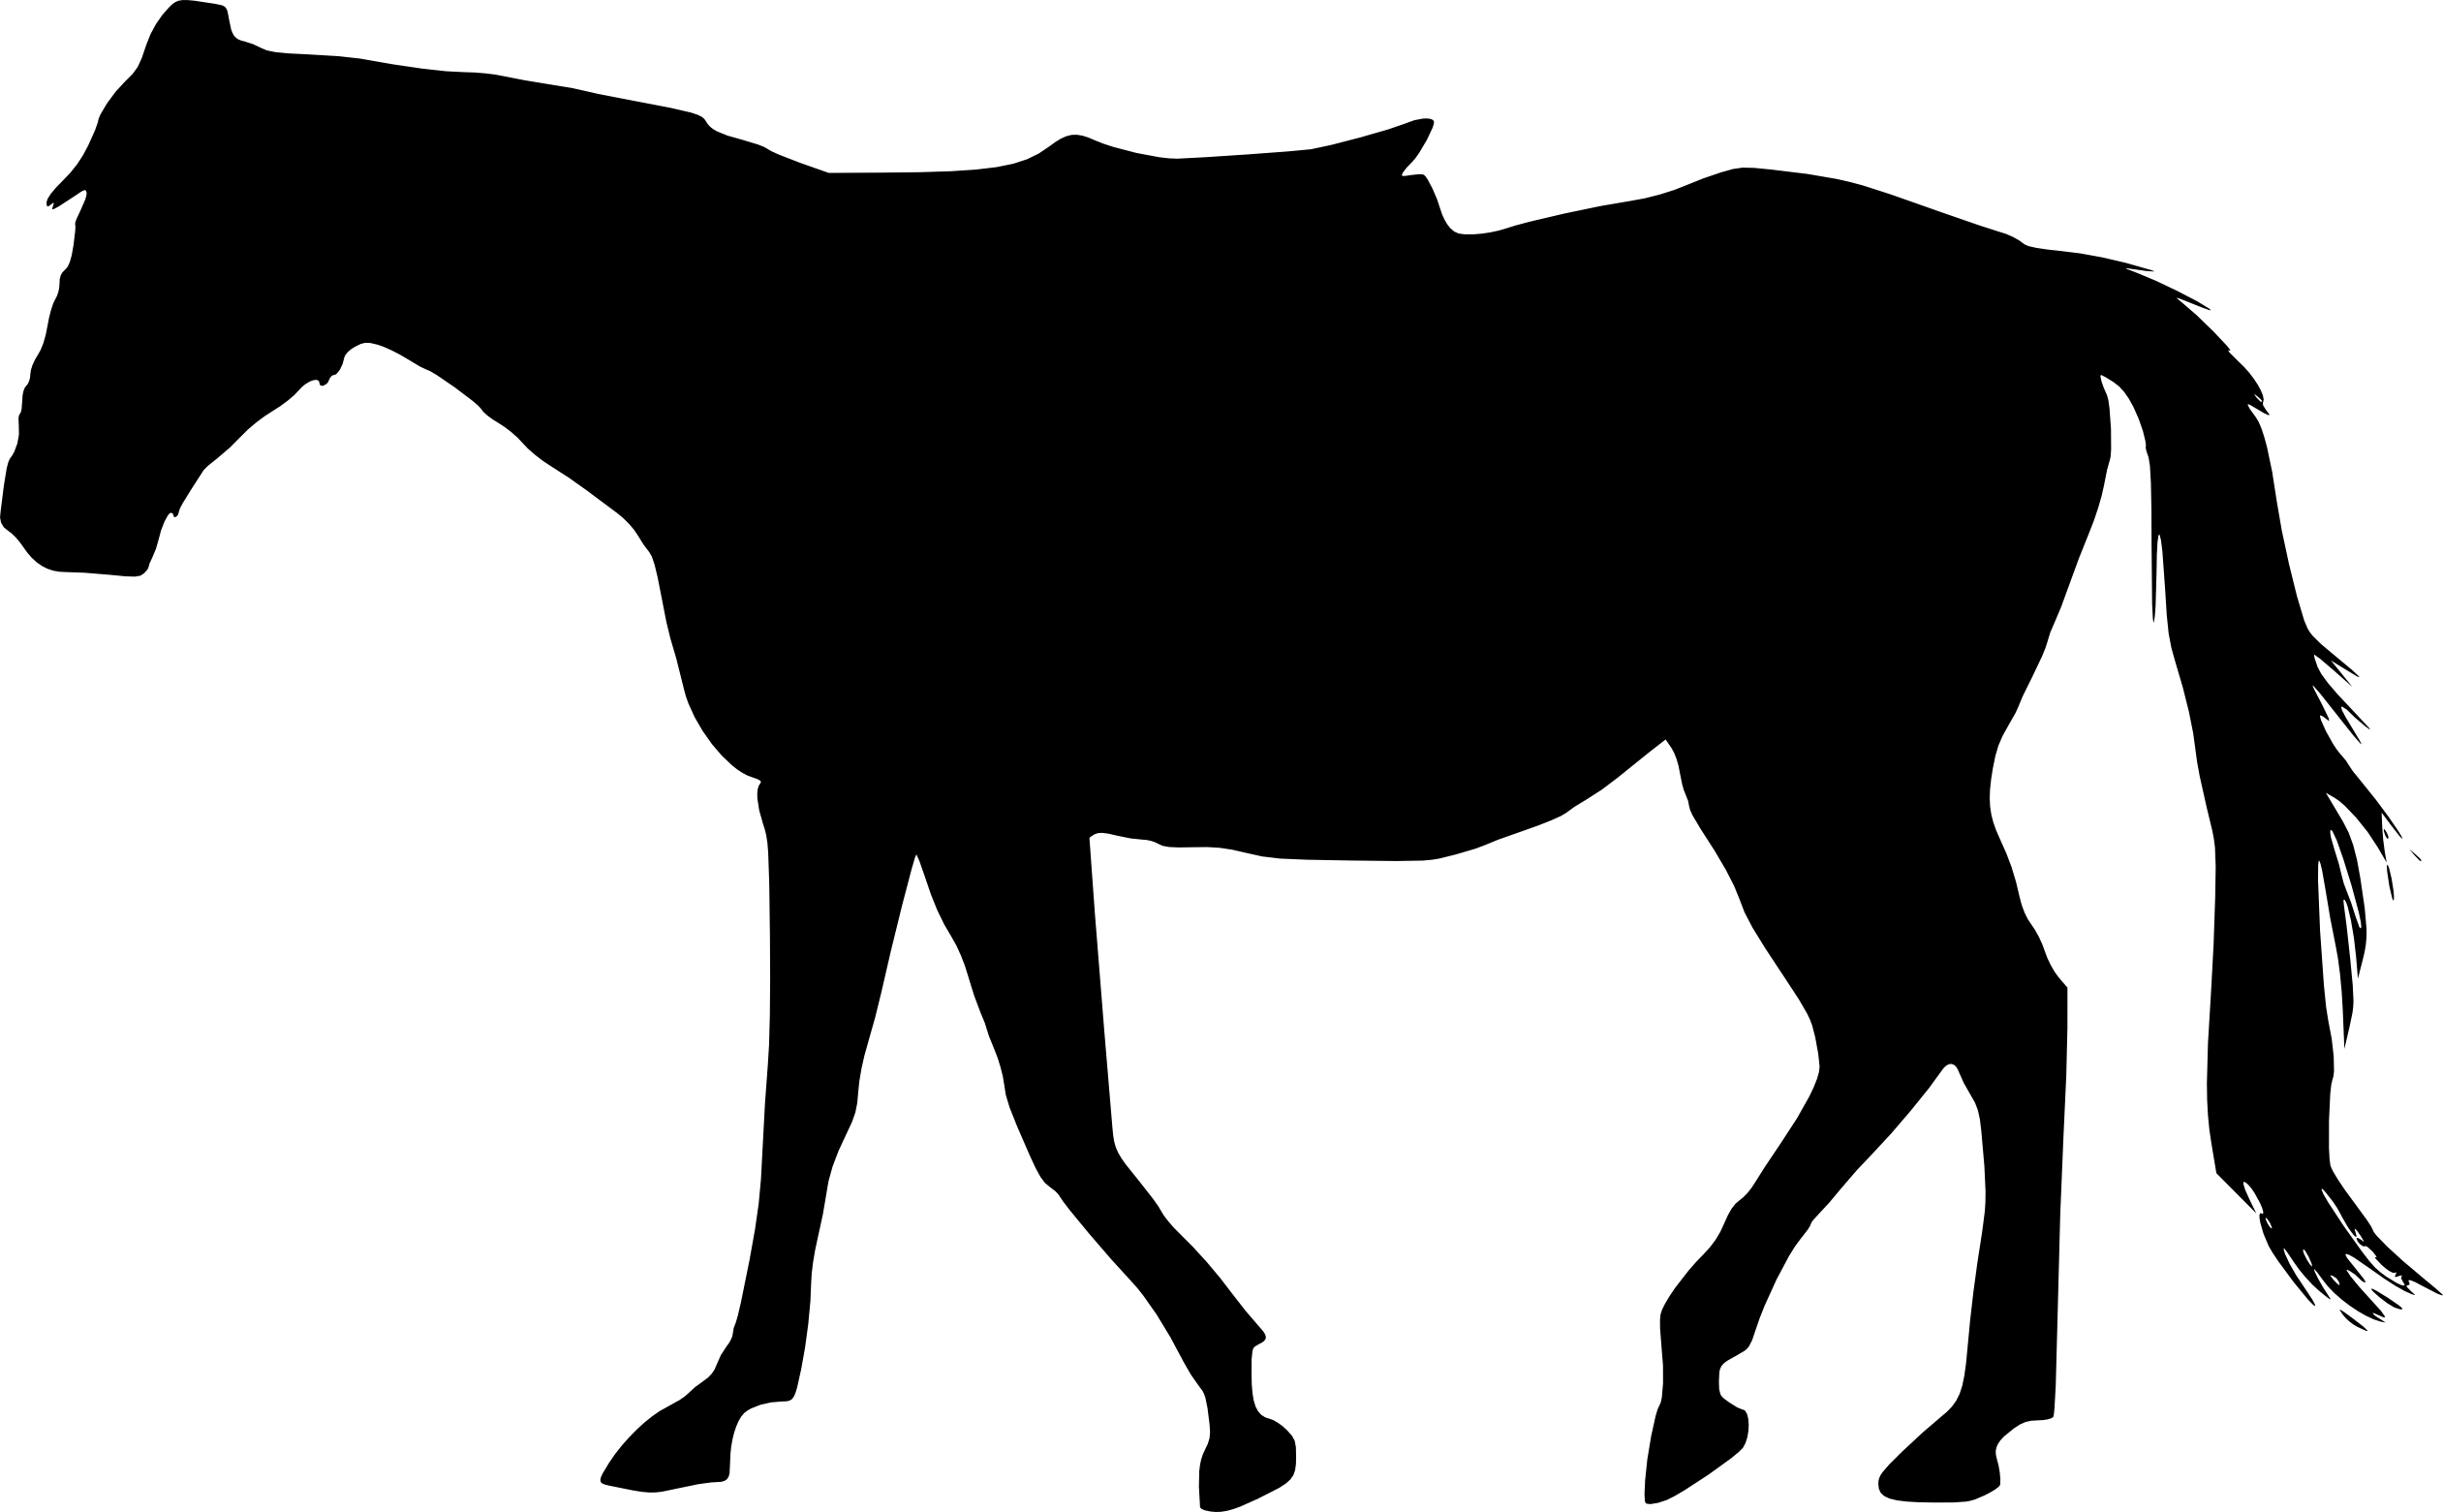 Clipart castle horse. Carriage silhouette at getdrawings